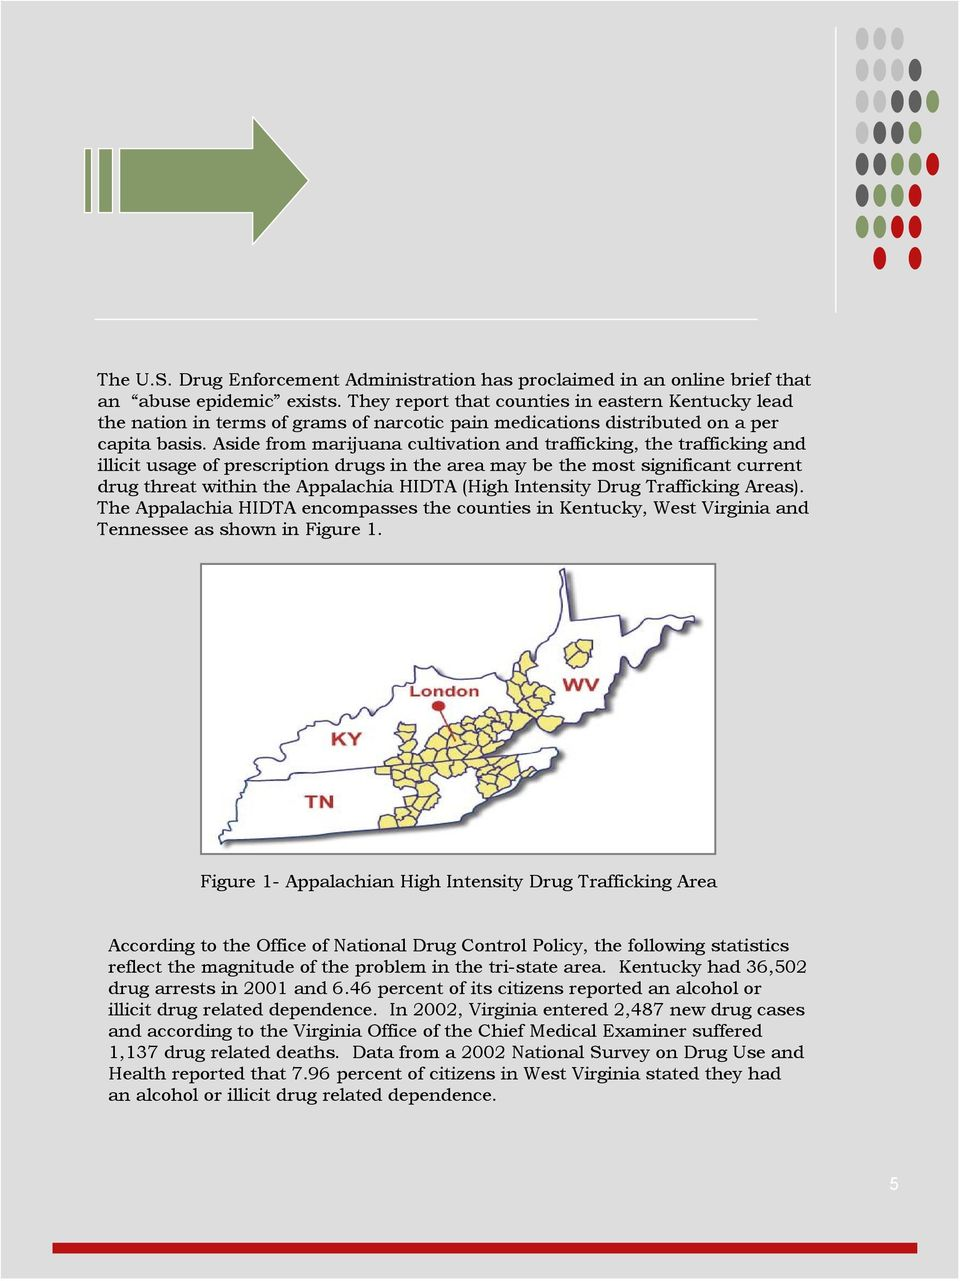 Aside from marijuana cultivation and trafficking, the trafficking and illicit usage of prescription drugs in the area may be the most significant current drug threat within the Appalachia HIDTA (High